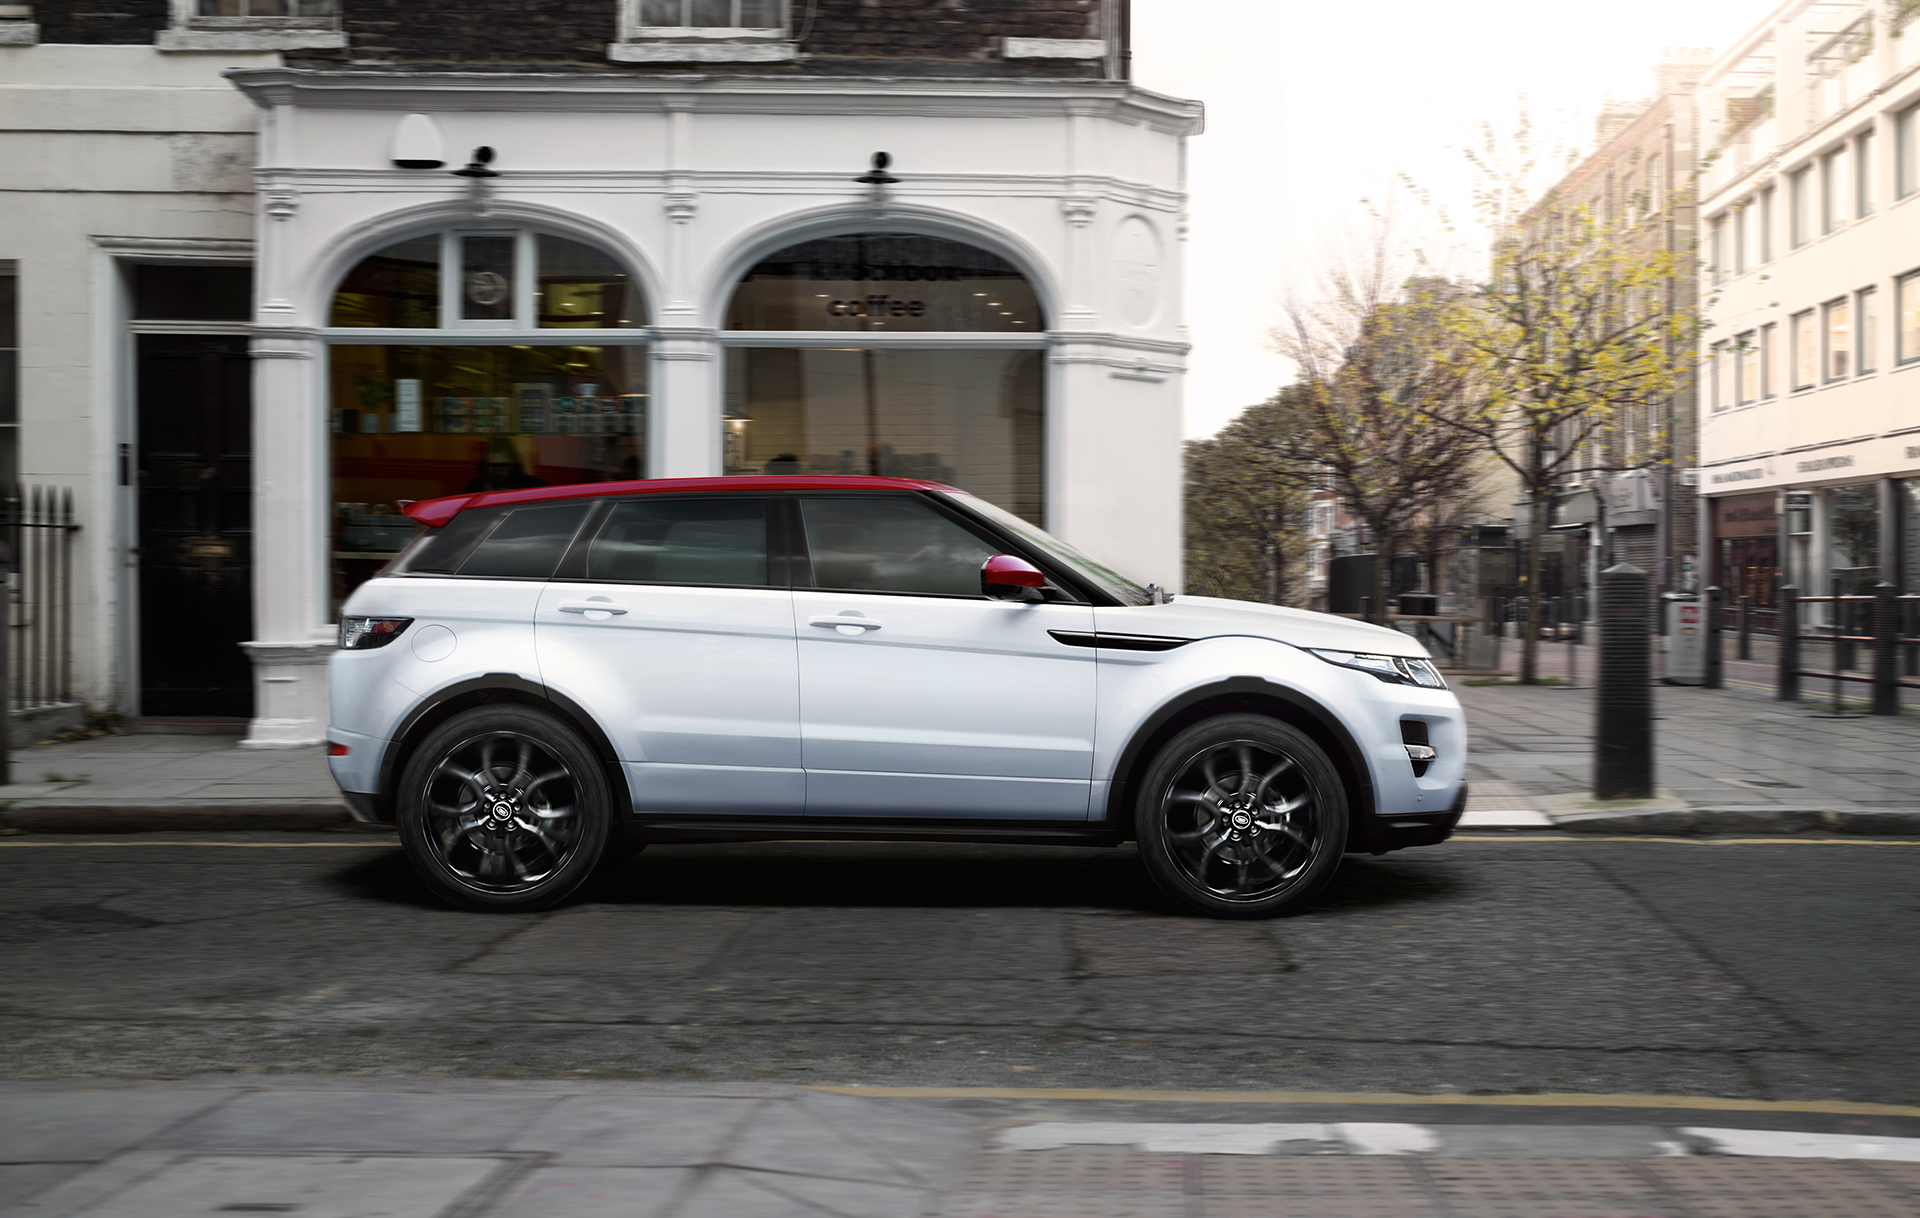 Range Rover Evoque NW8 Special Edition - profil / side-face